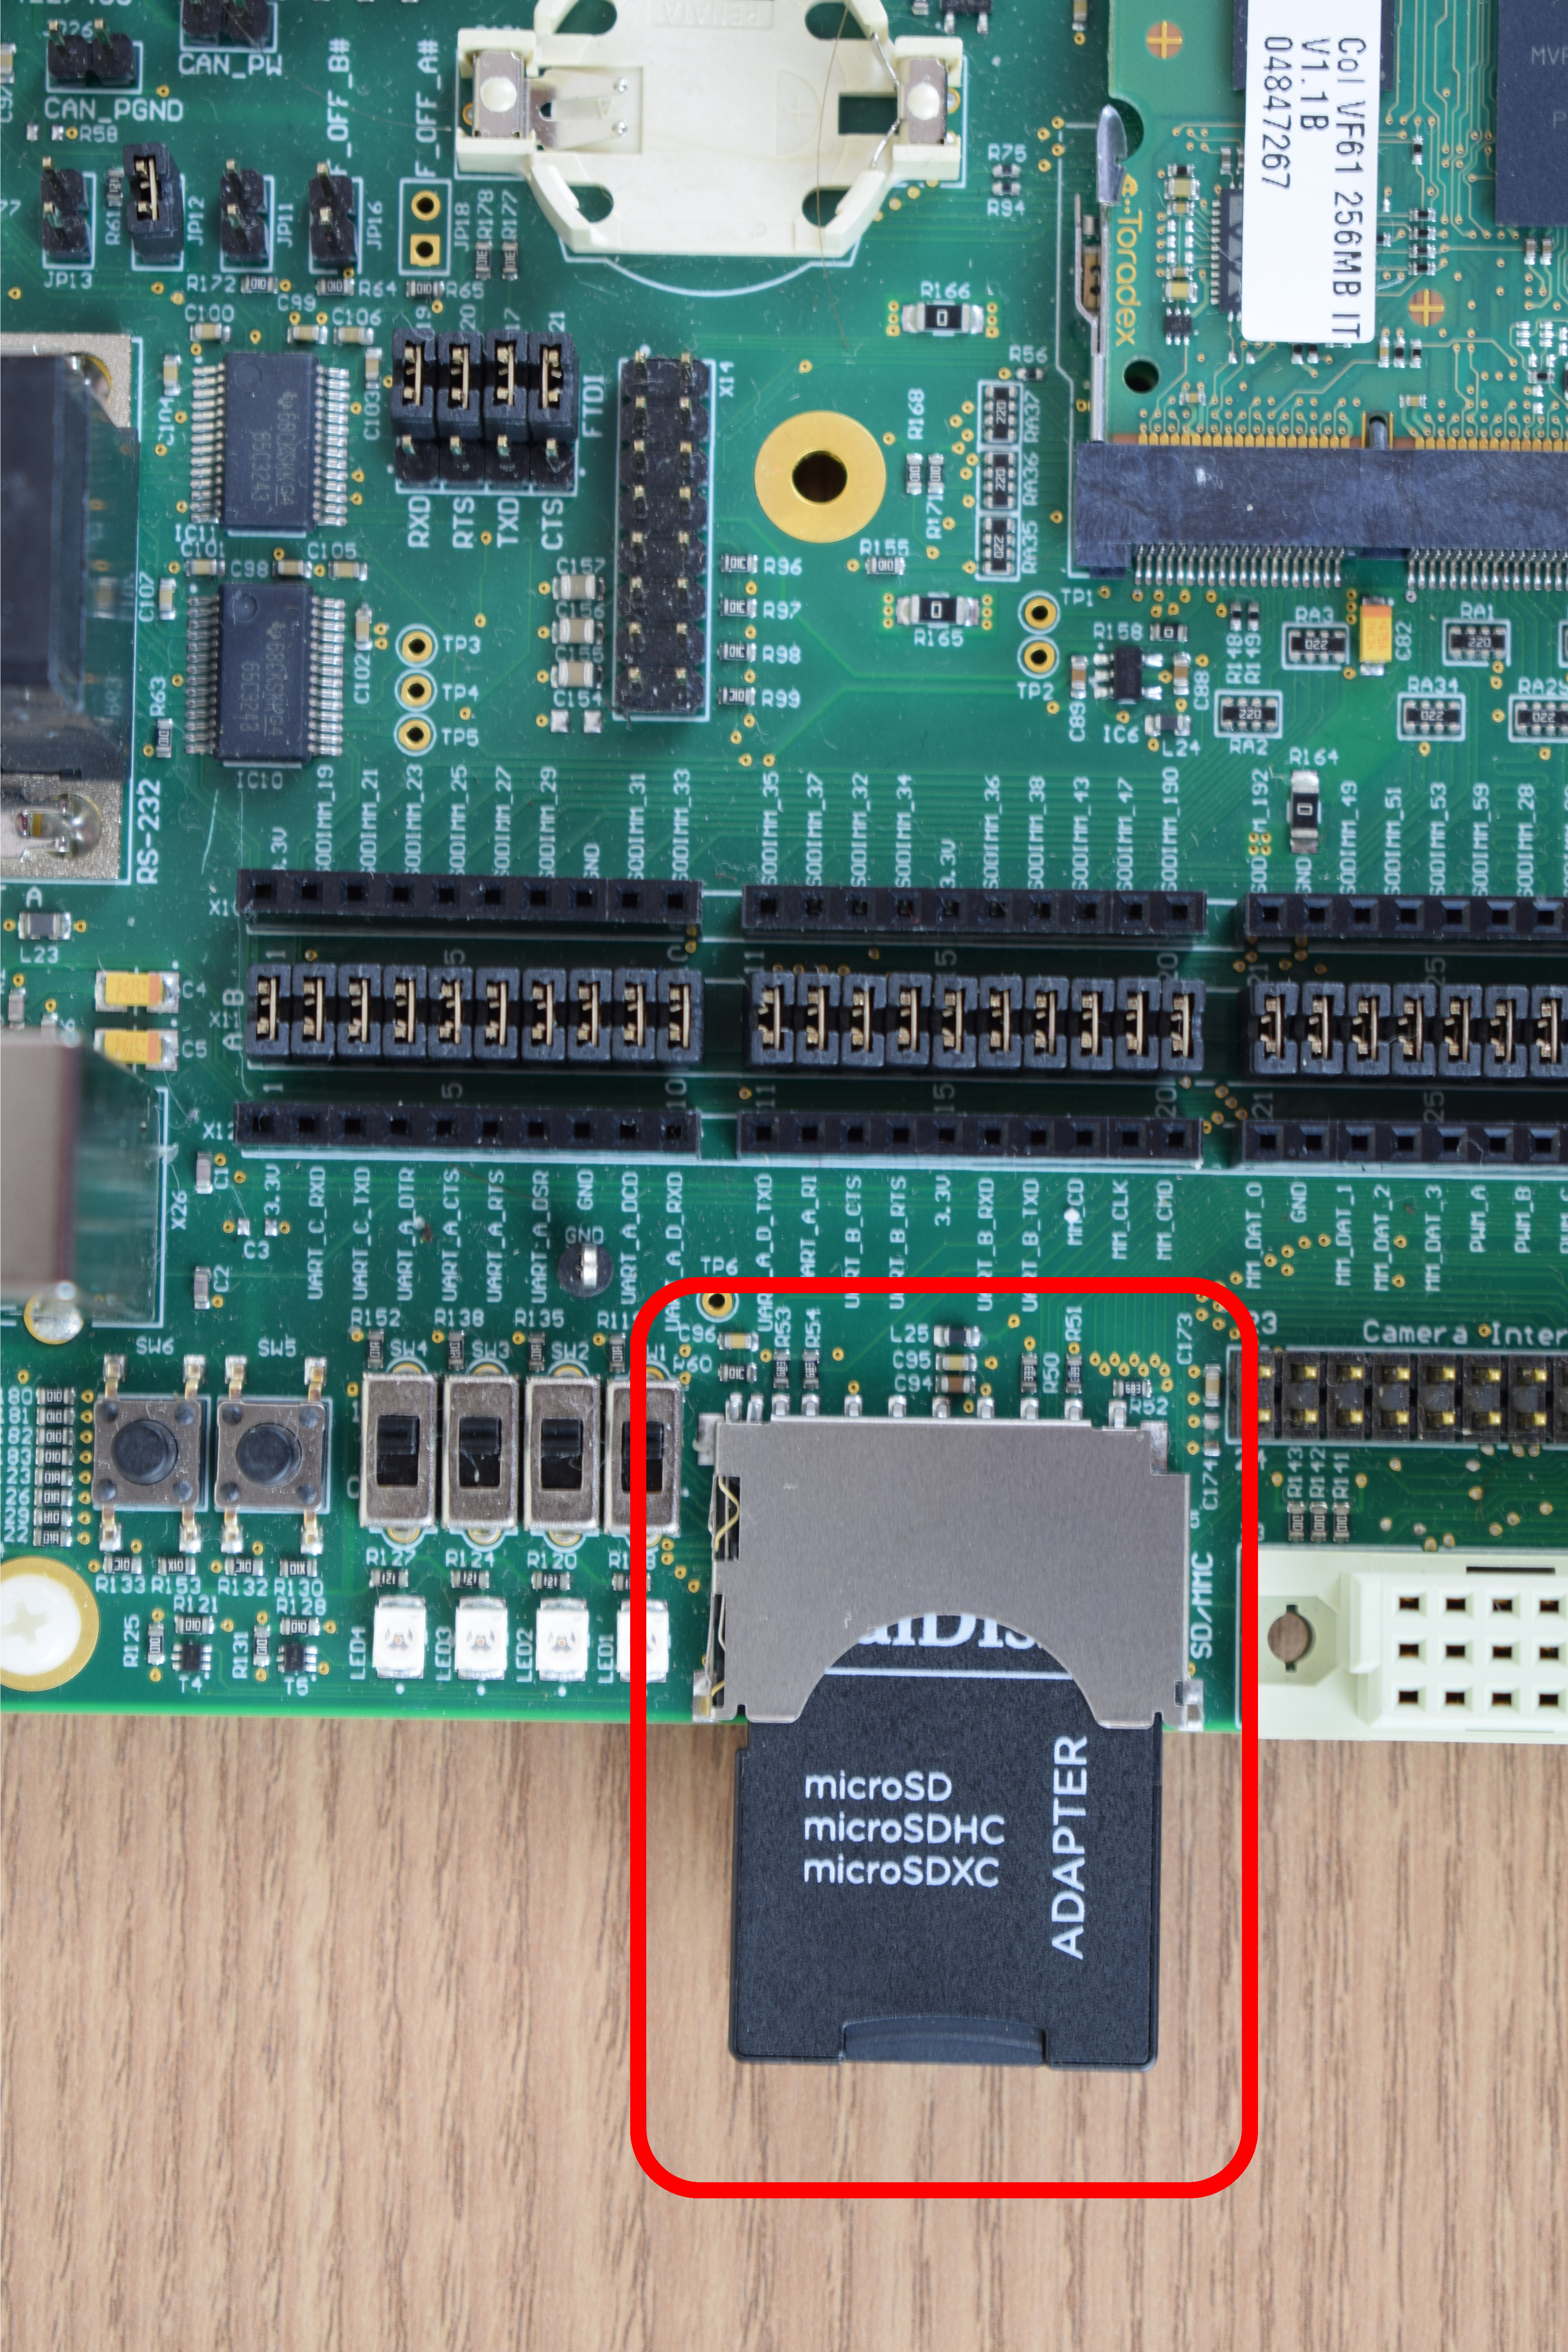 SD card slot highlighted